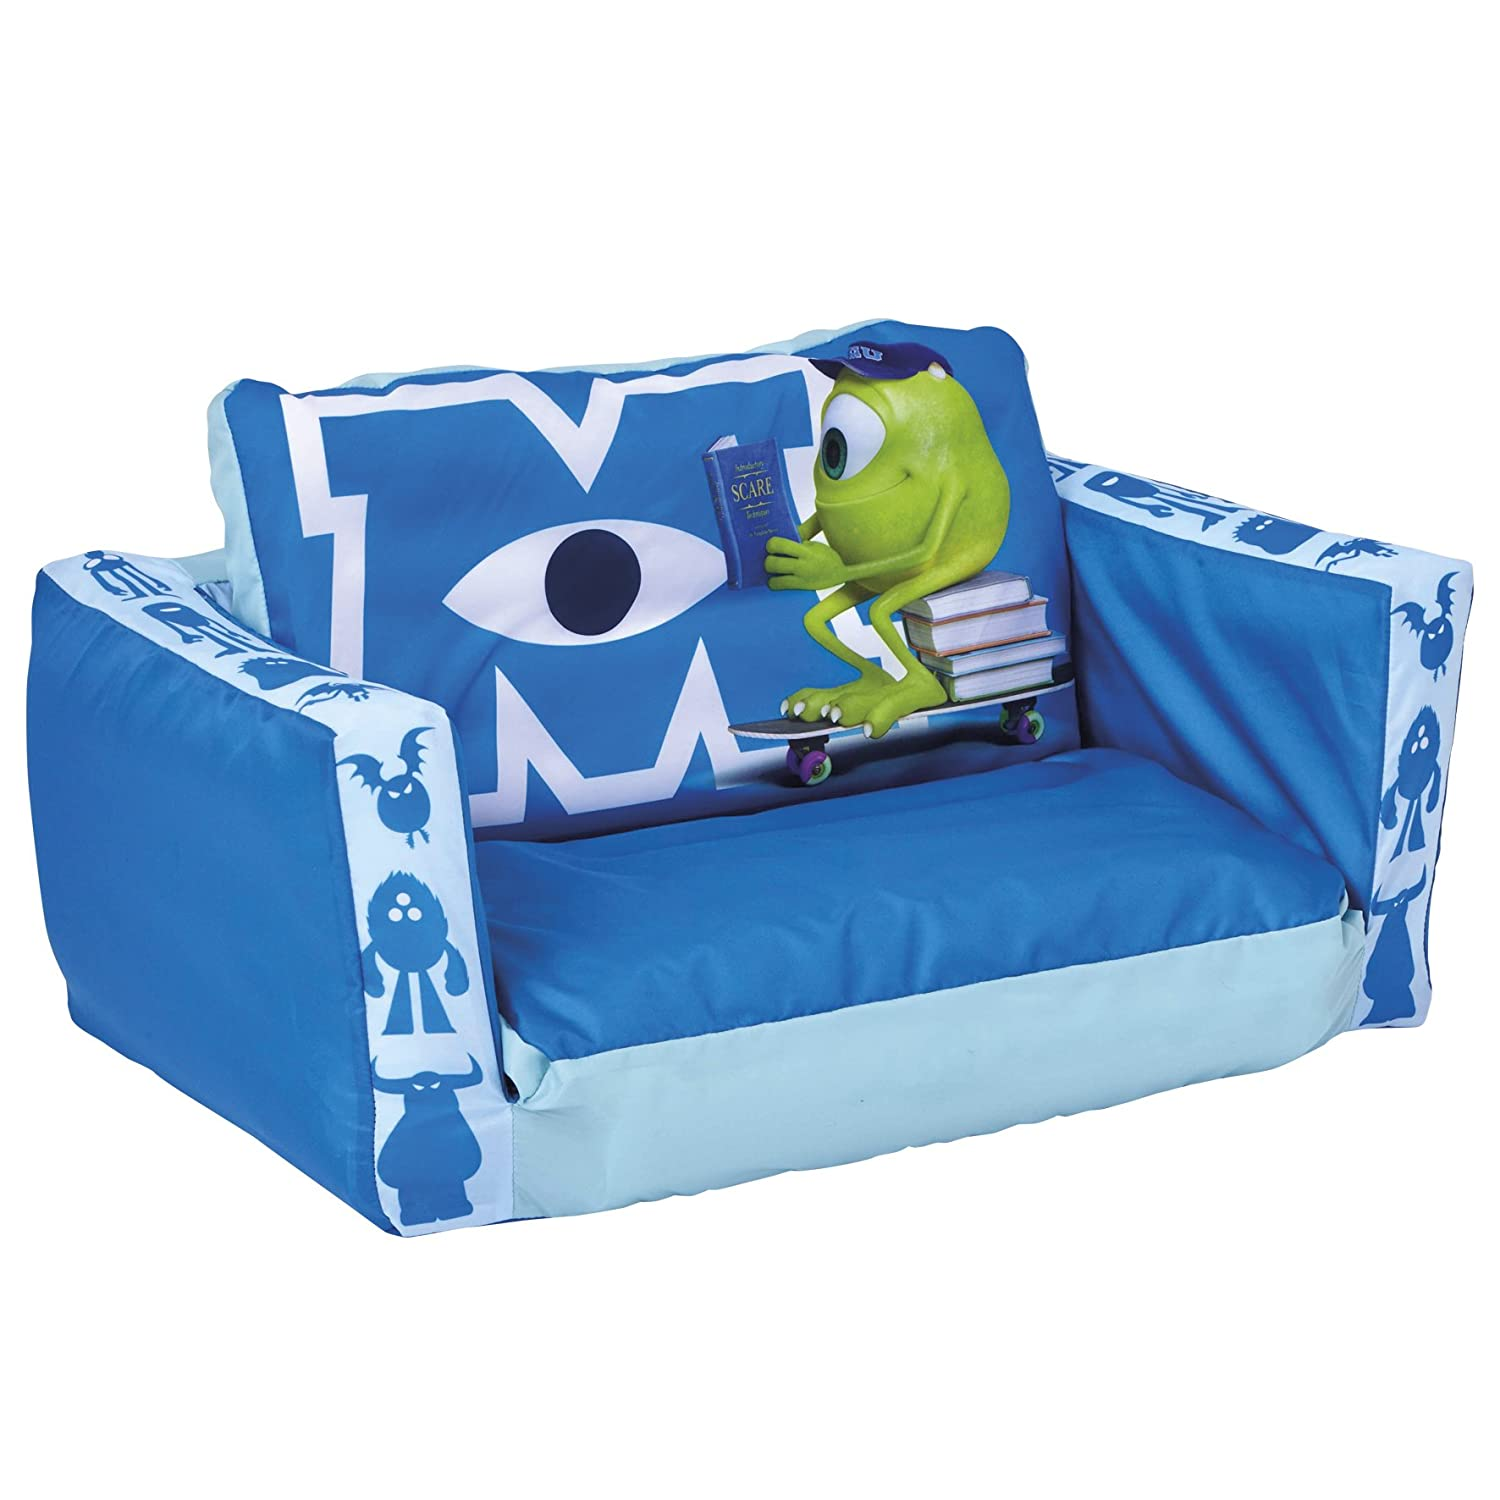 Monsters University Flip Out Sofa Amazon Kitchen & Home